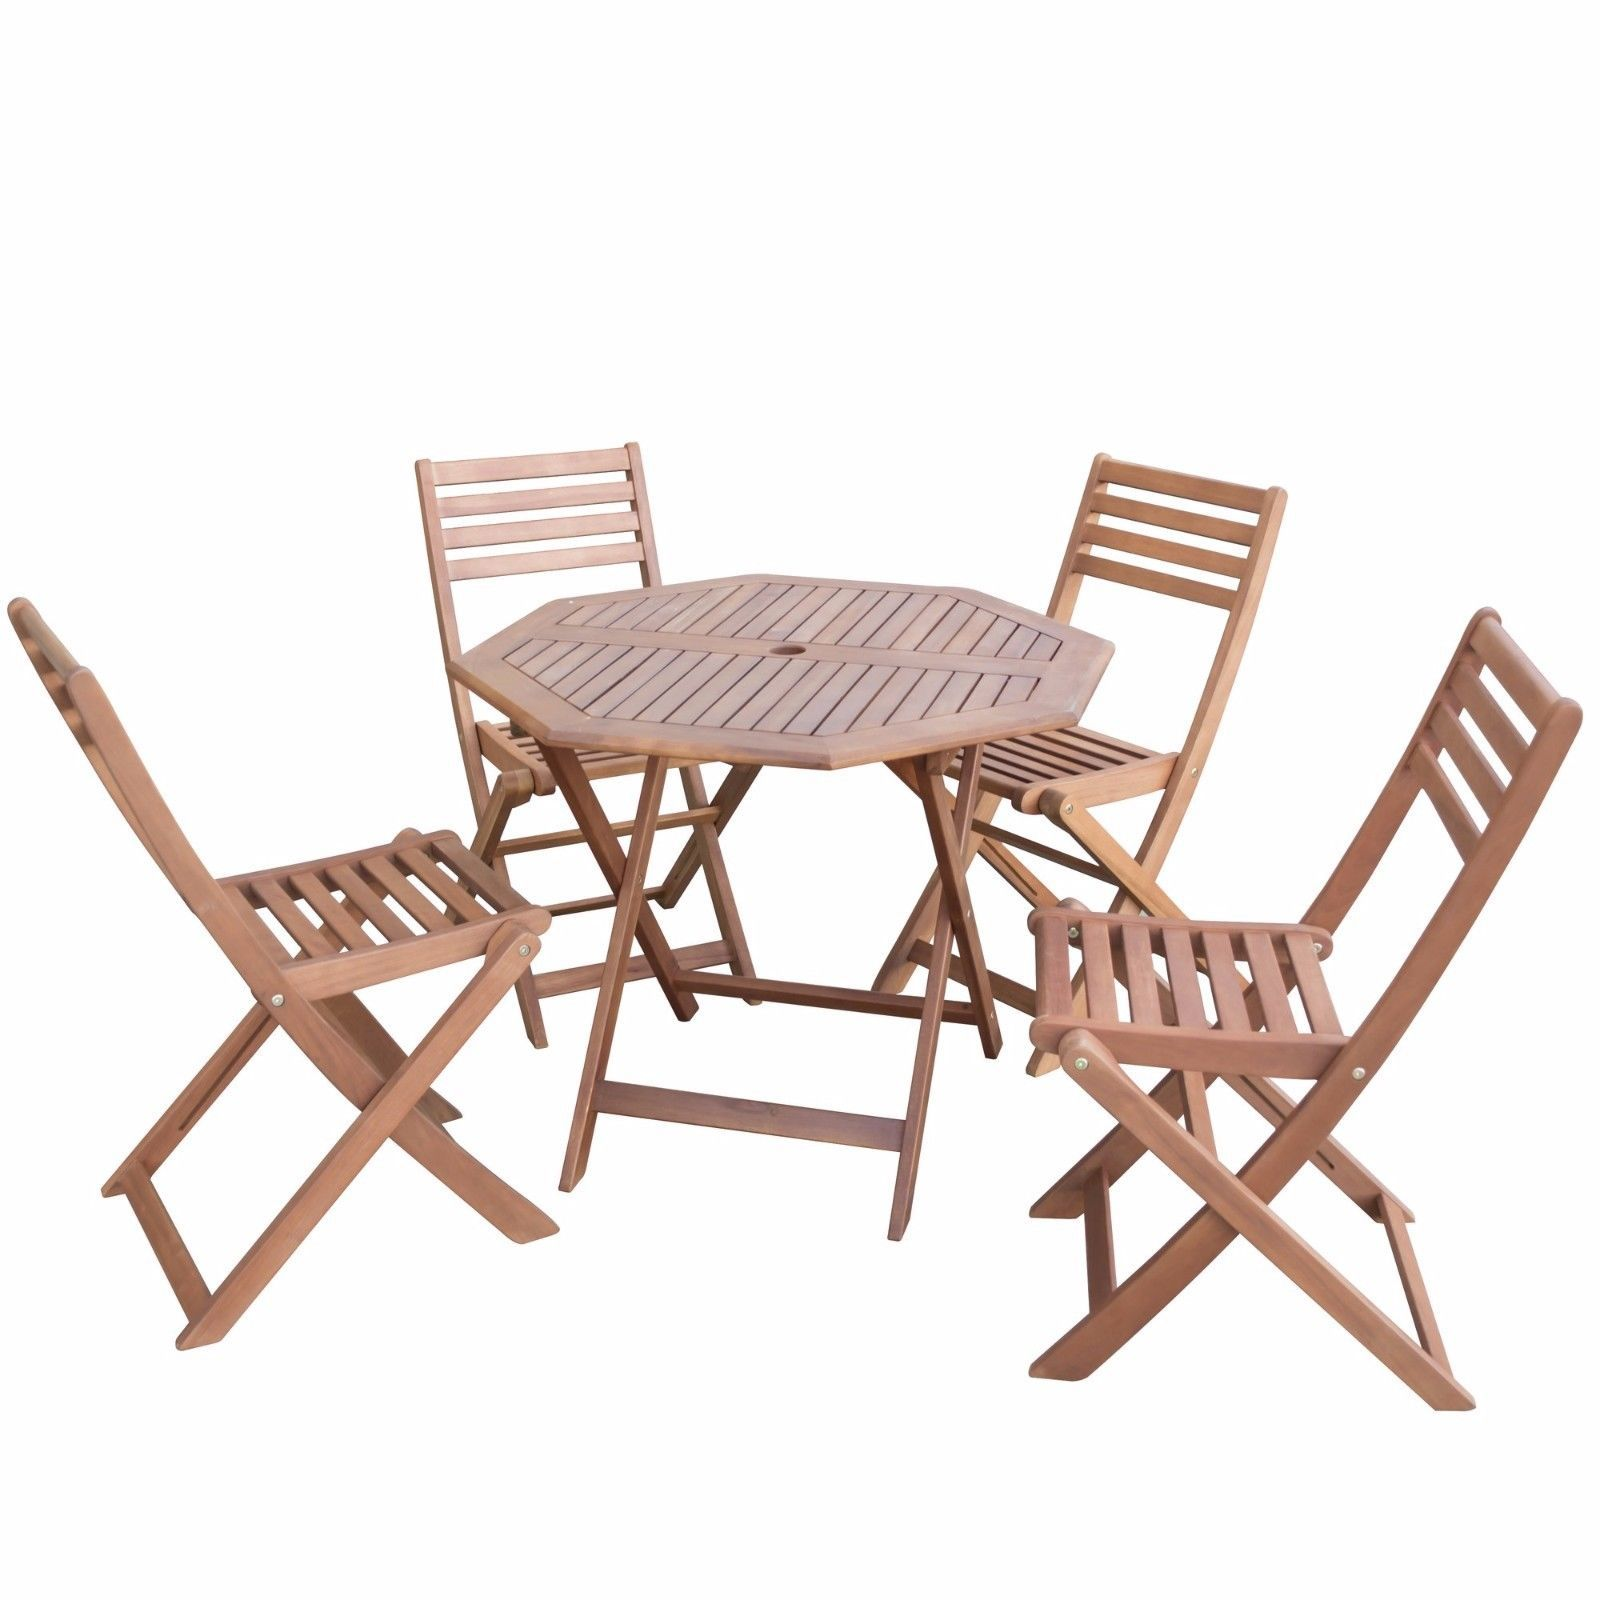 Patio dining set table 4 chairs garden furniture sets for Outdoor wood dining chairs